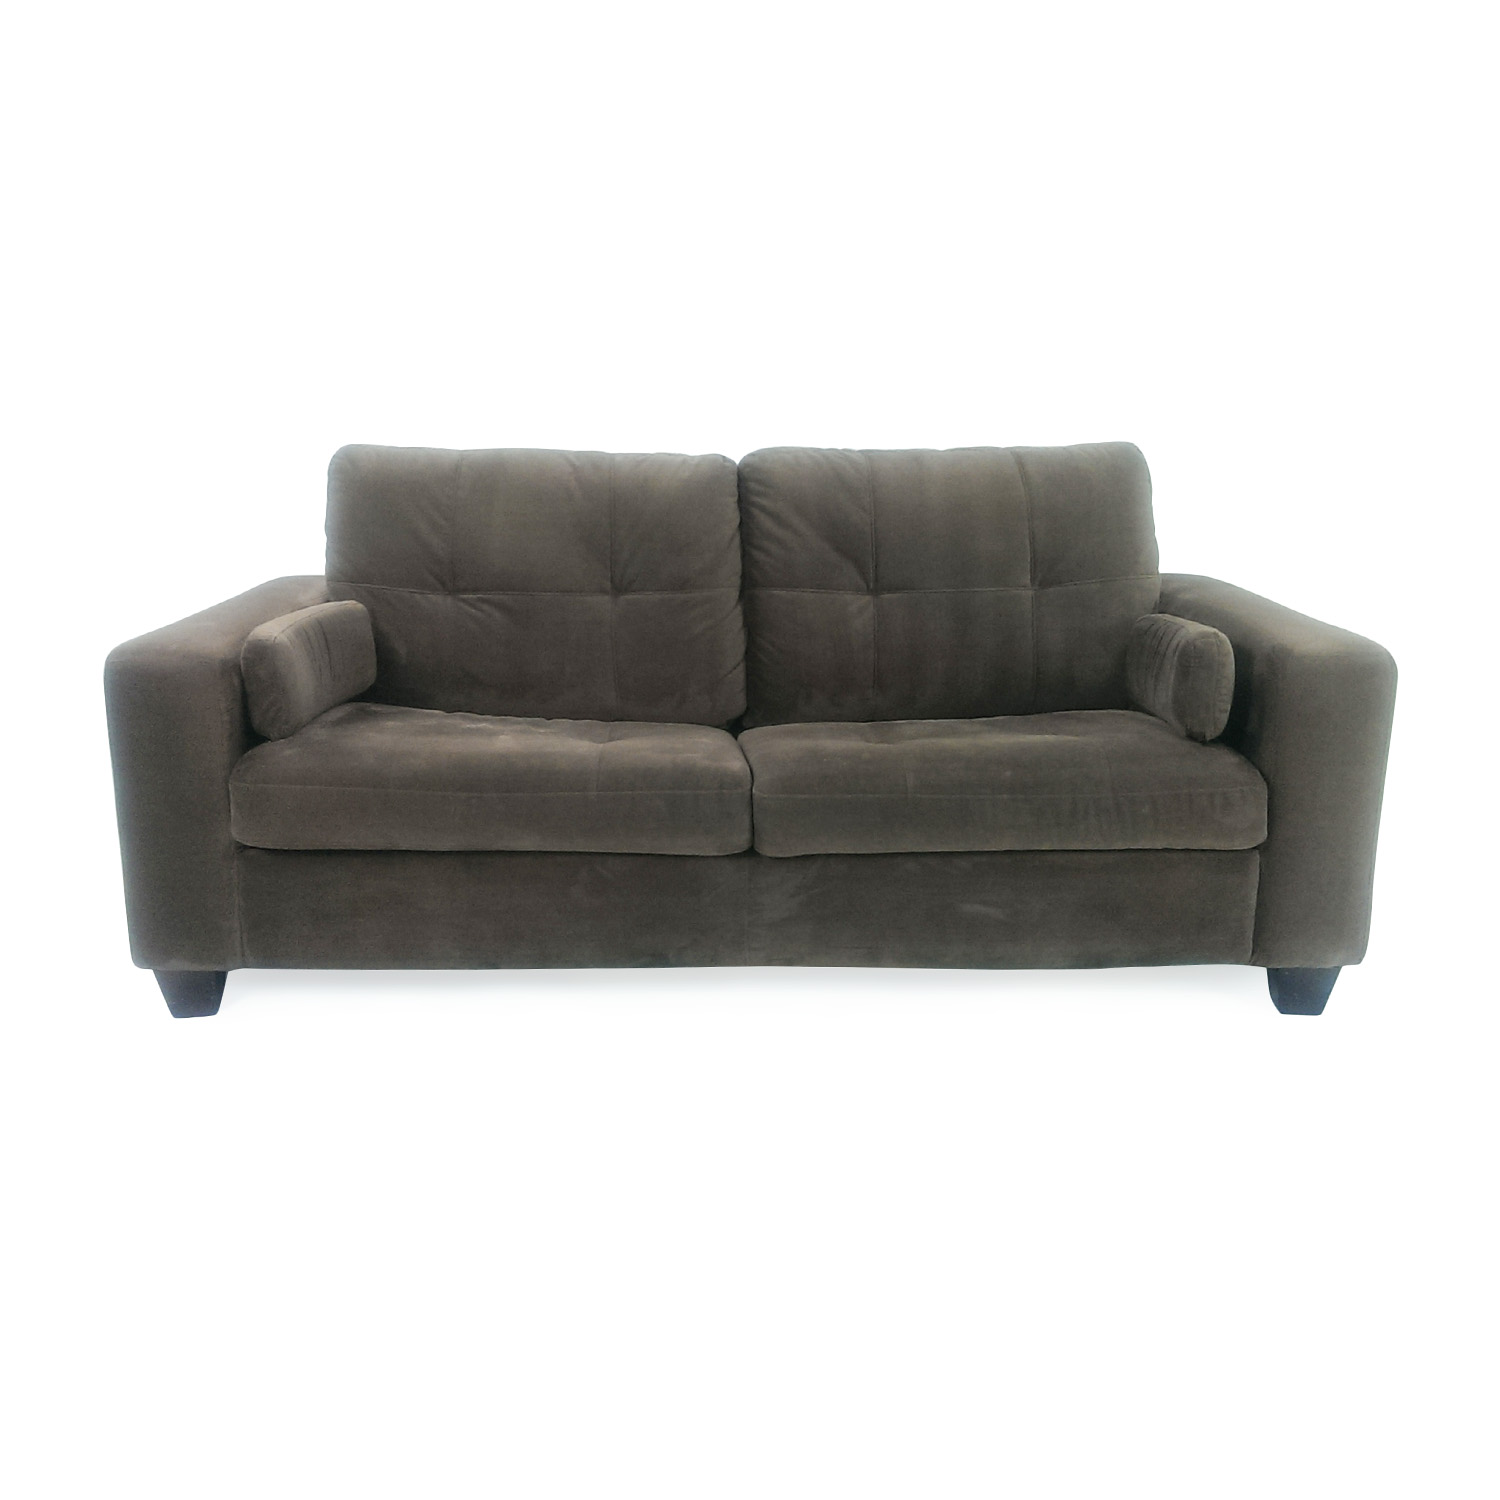 buy Jennifer Convertibles Jennifer Convertibles Microsuede Pull Out Sofa online